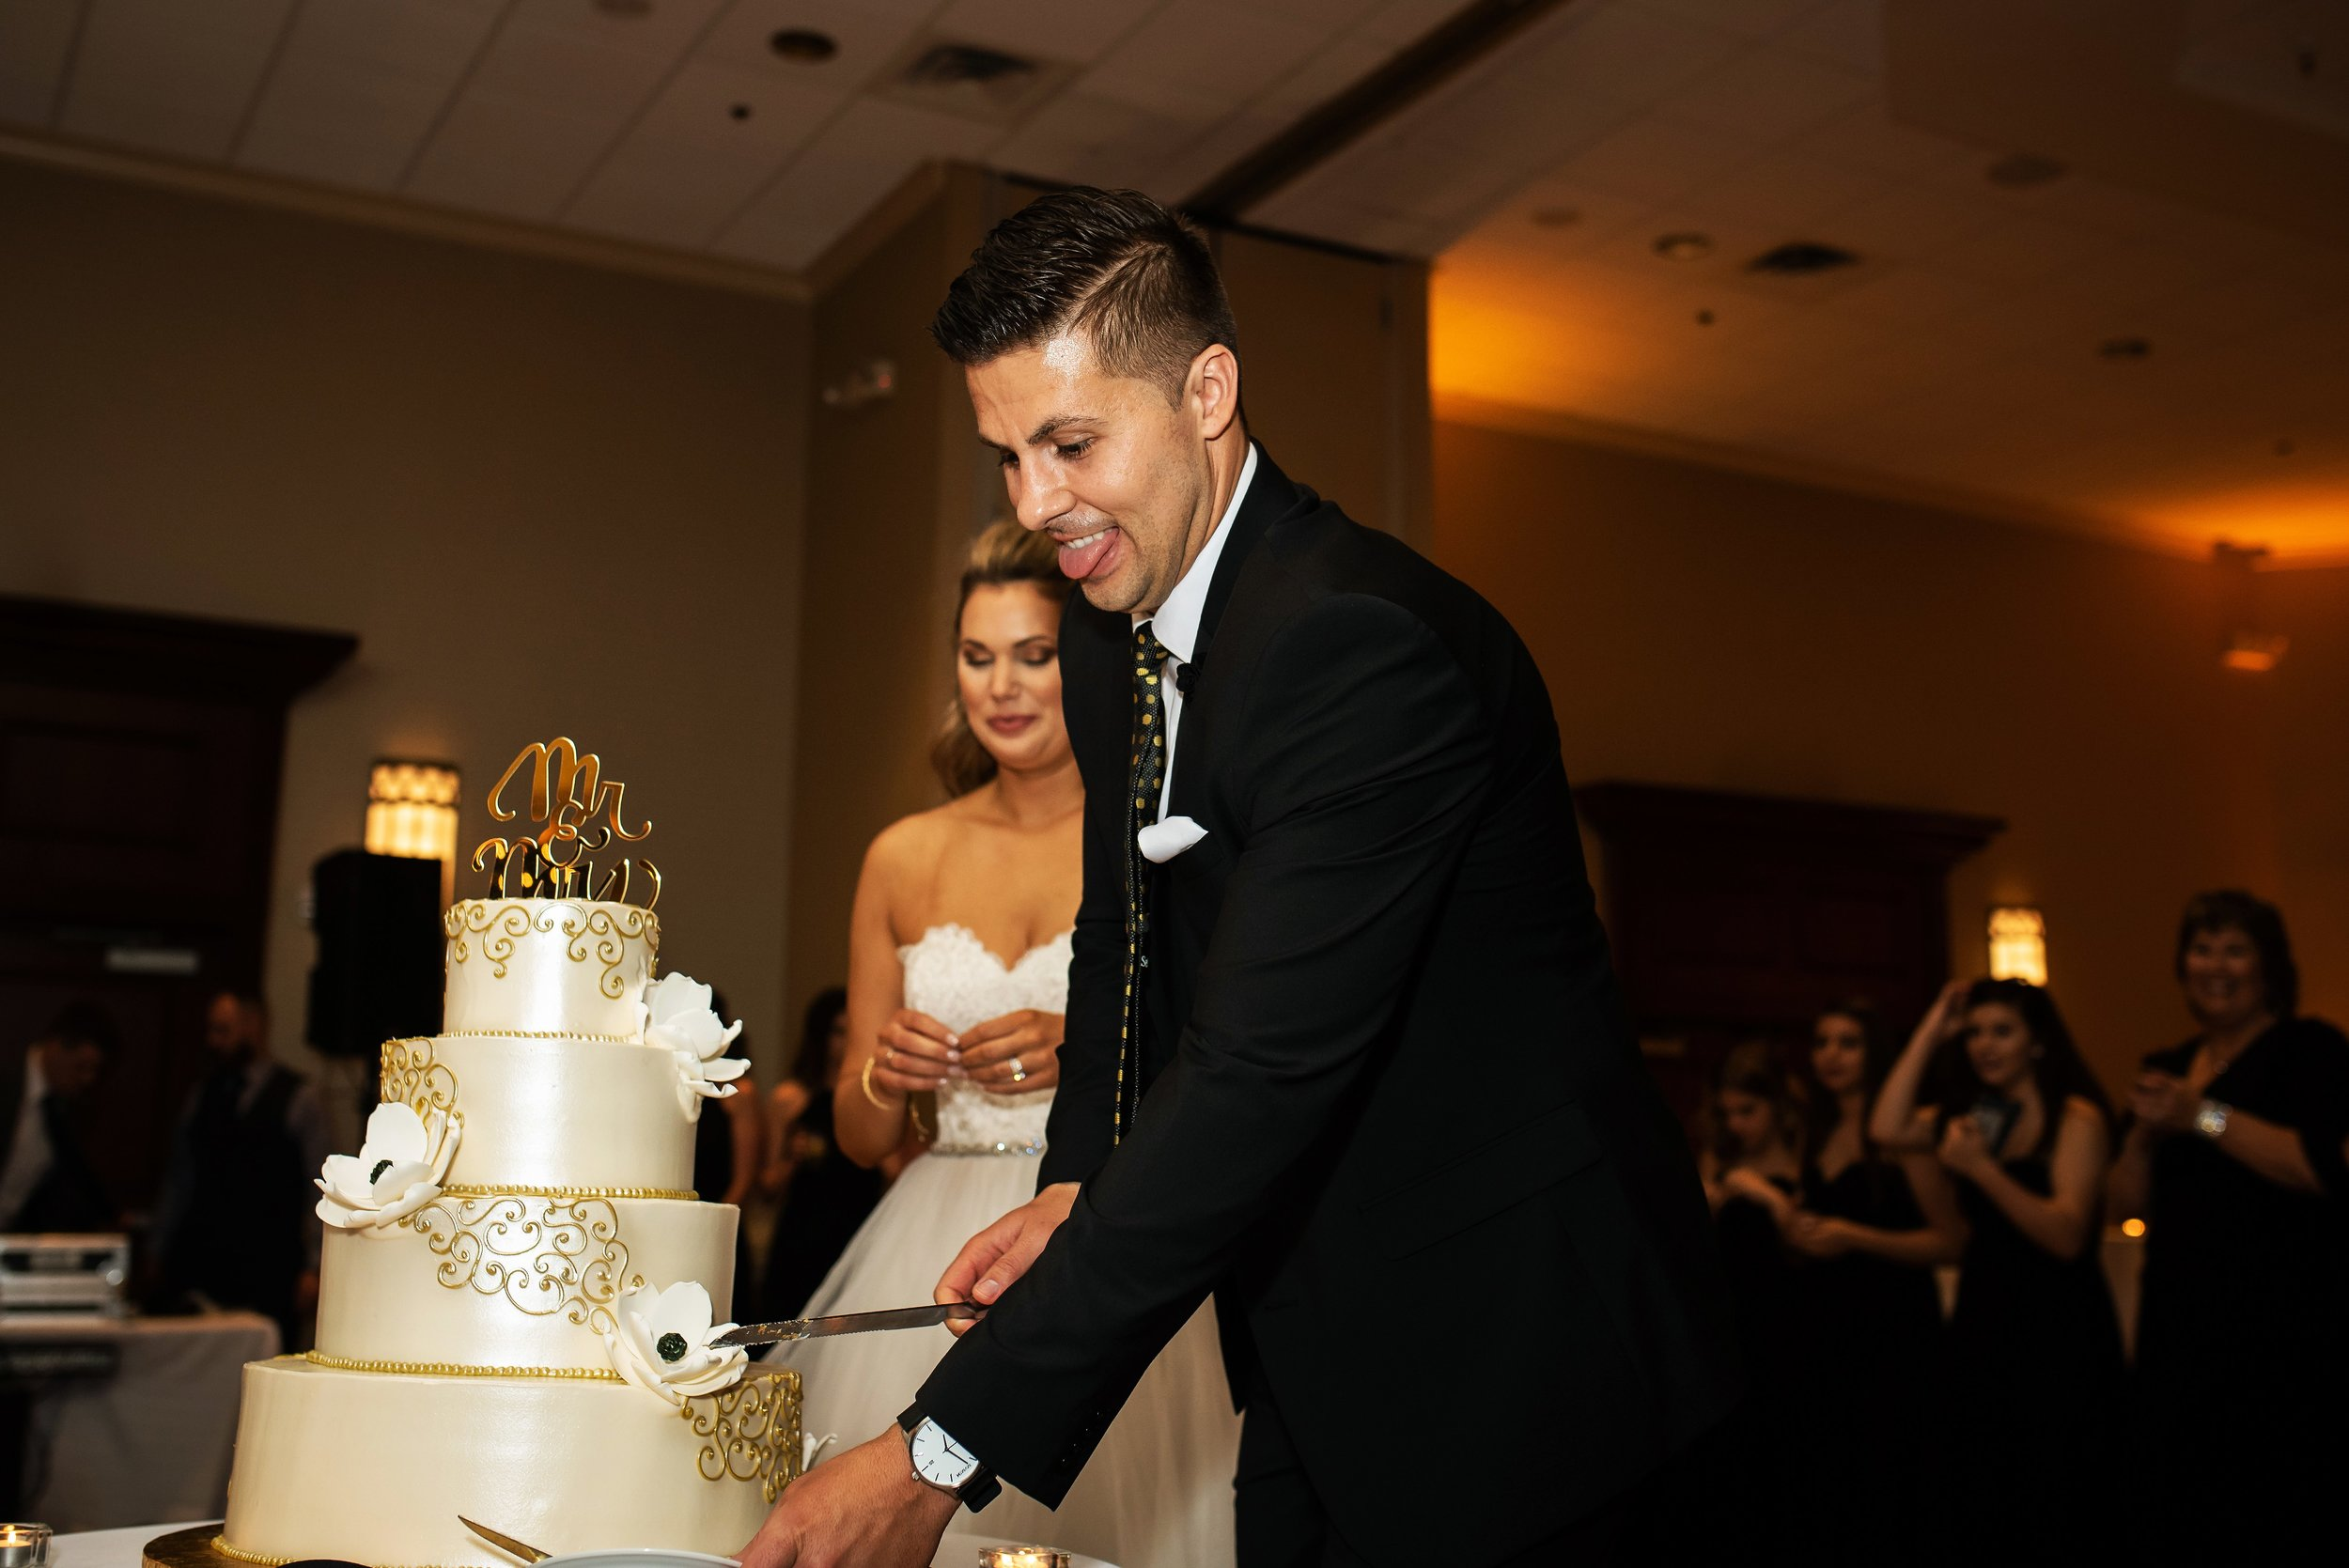 Groom Sticks out tongue as he cuts wedding cake